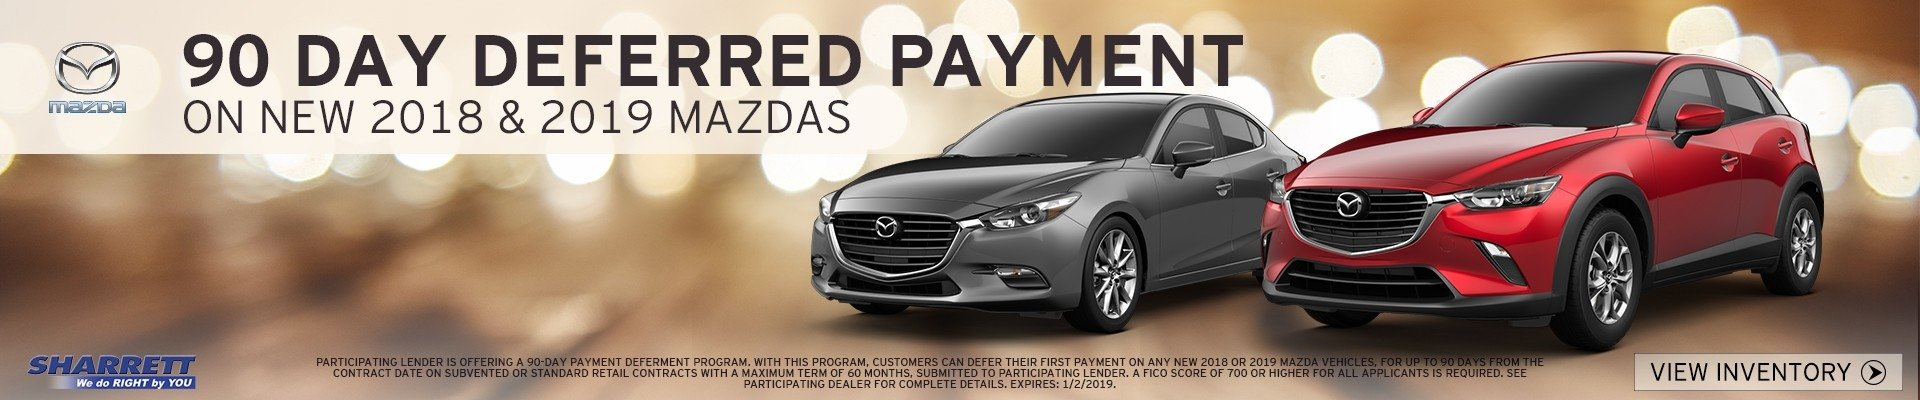 90 Day Deferred Payment on new 2018 and 2019 Mazdas